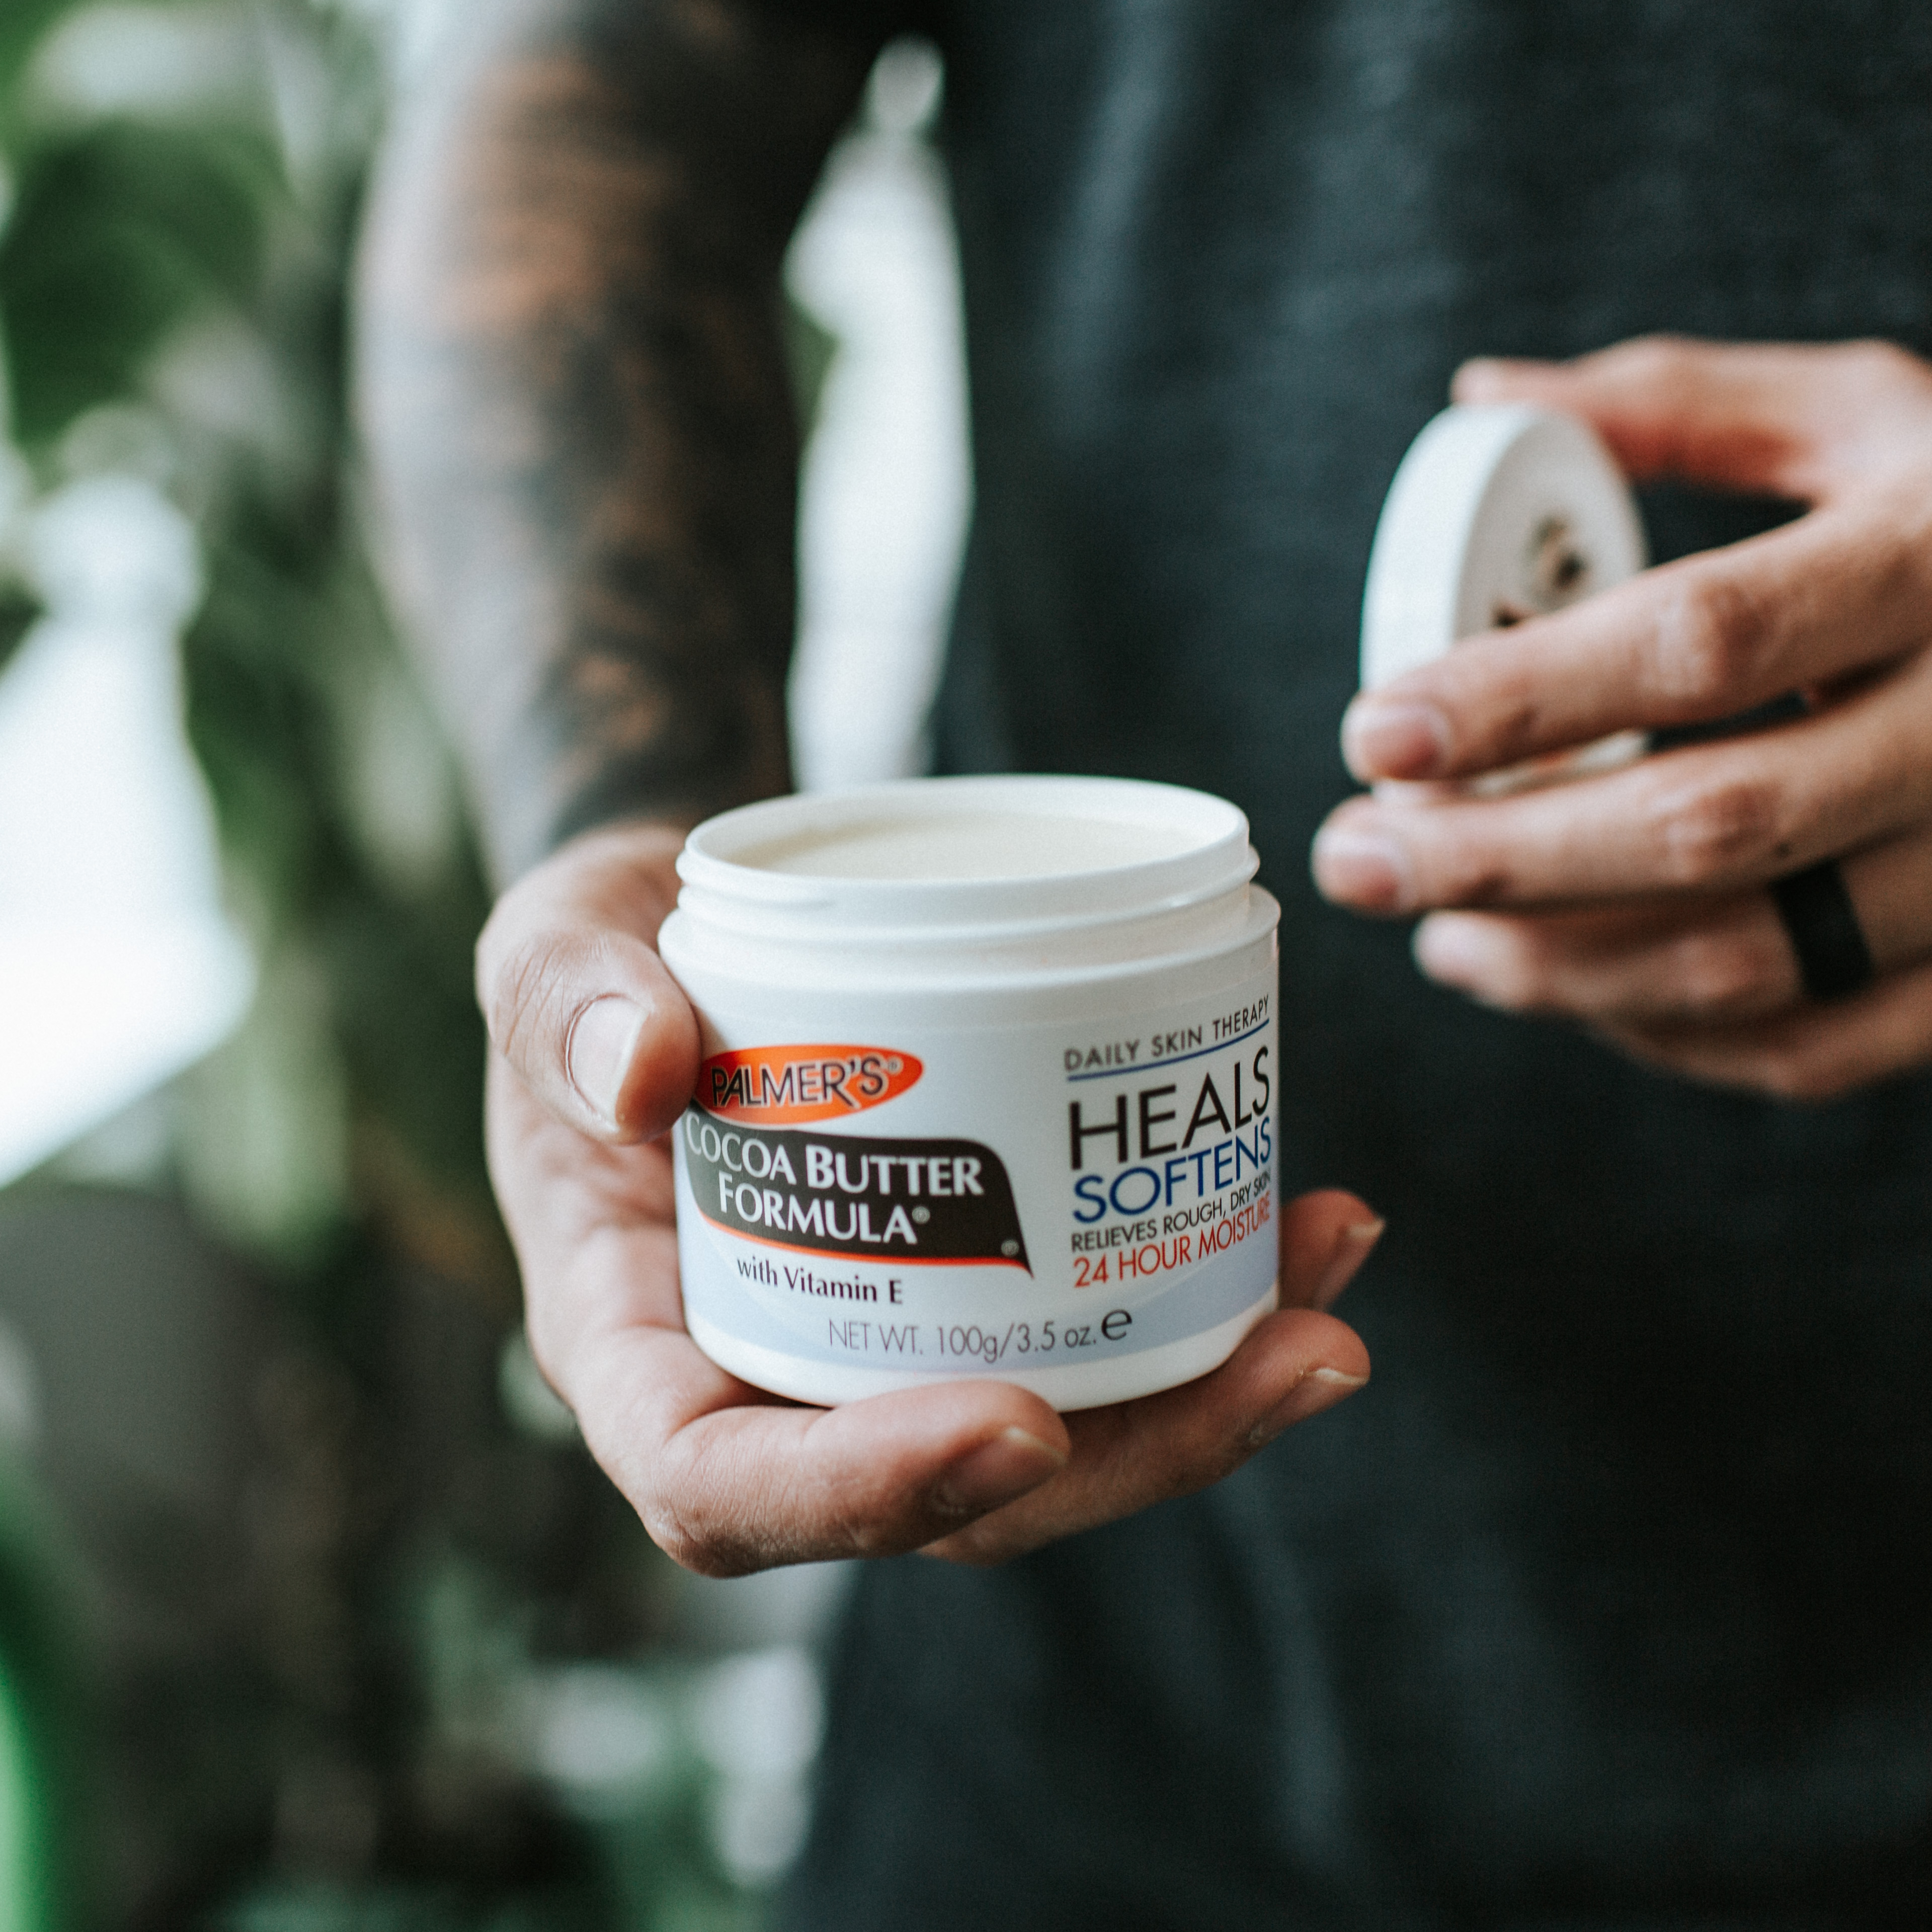 Palmer's Cocoa Butter Original Solid Jar for Tattoos